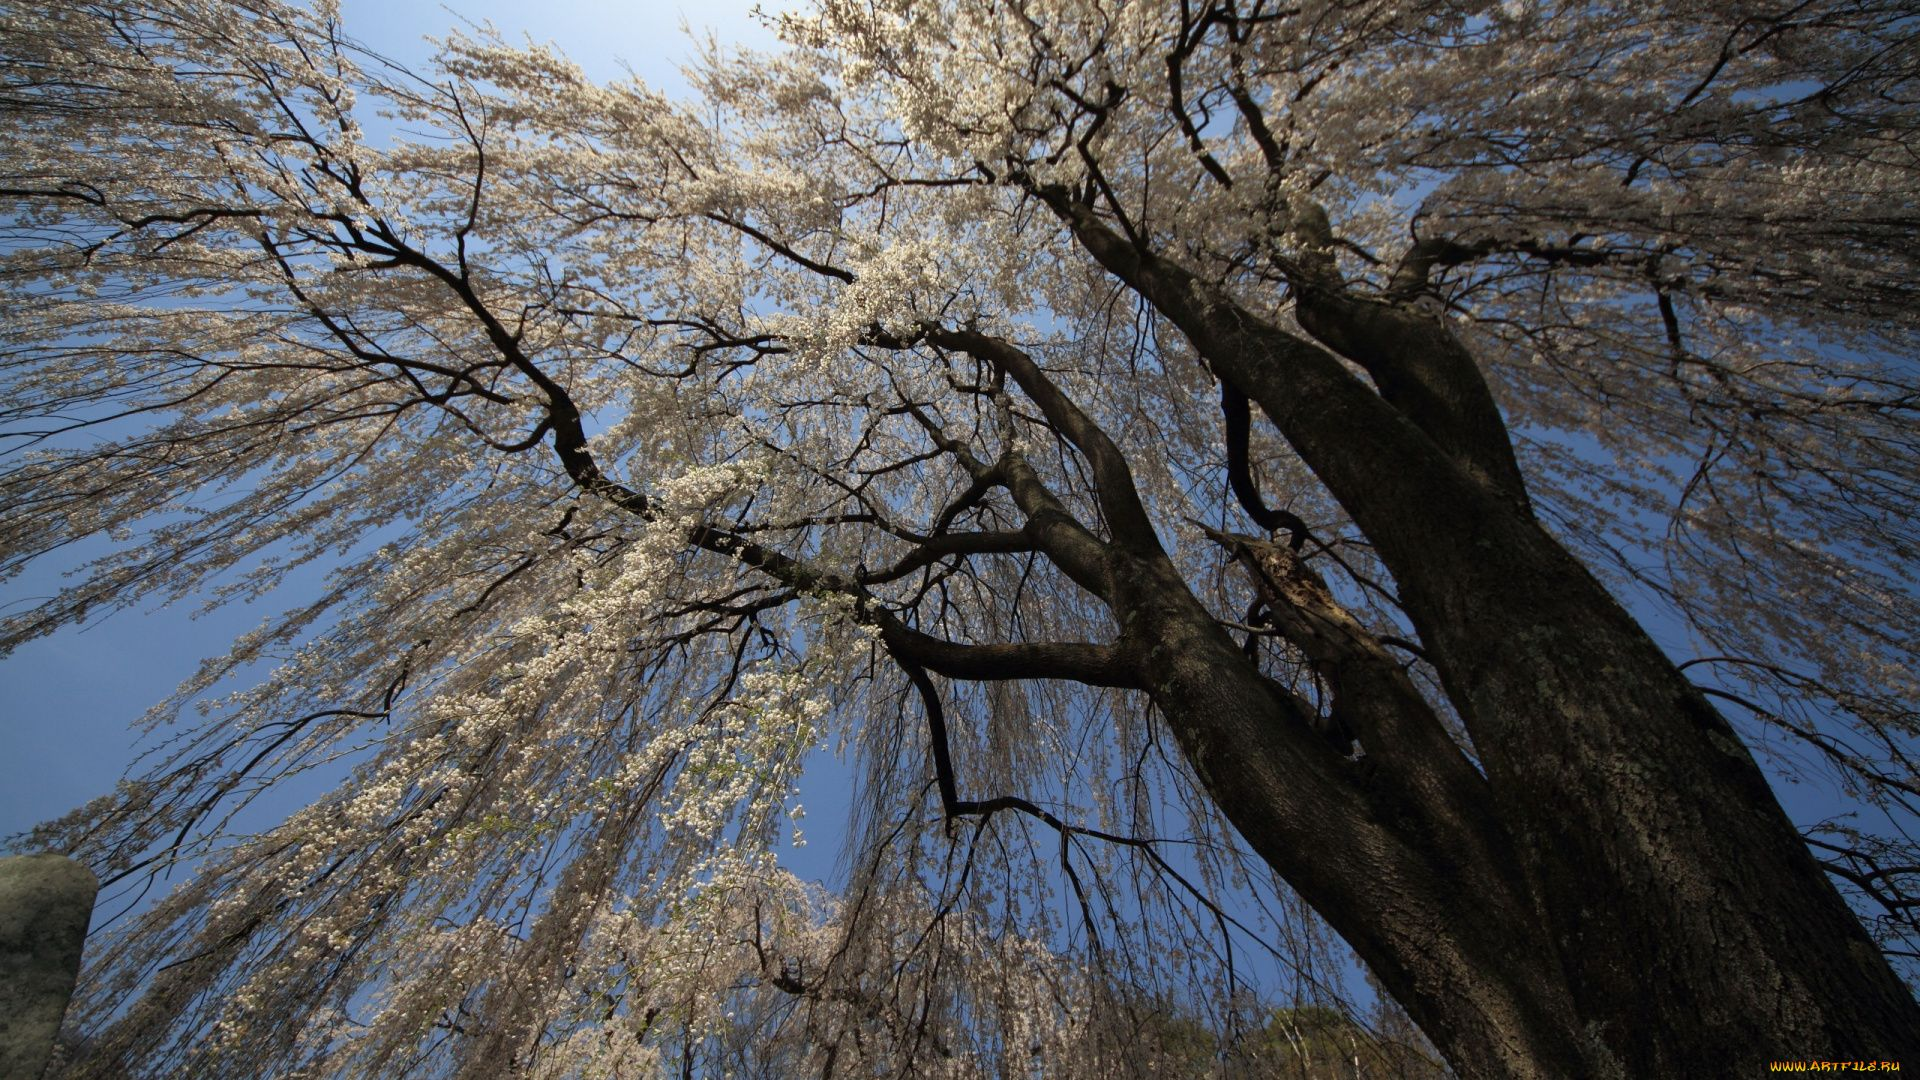 Tree Branch download free wallpapers for pc in hd